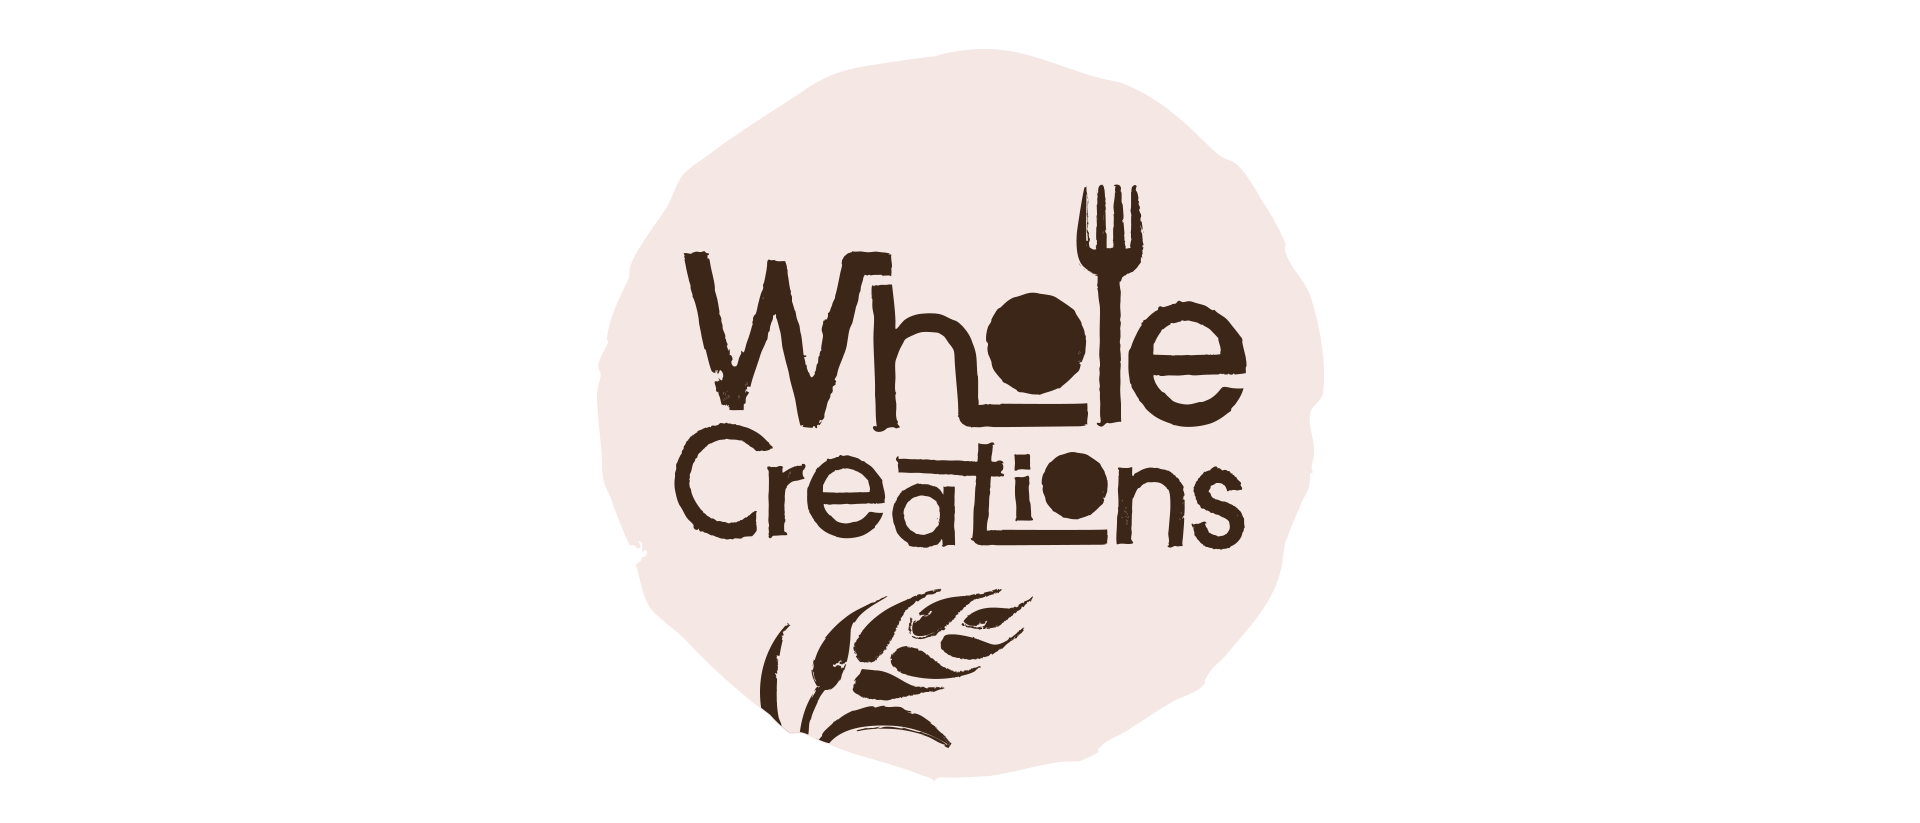 wholecreations logo